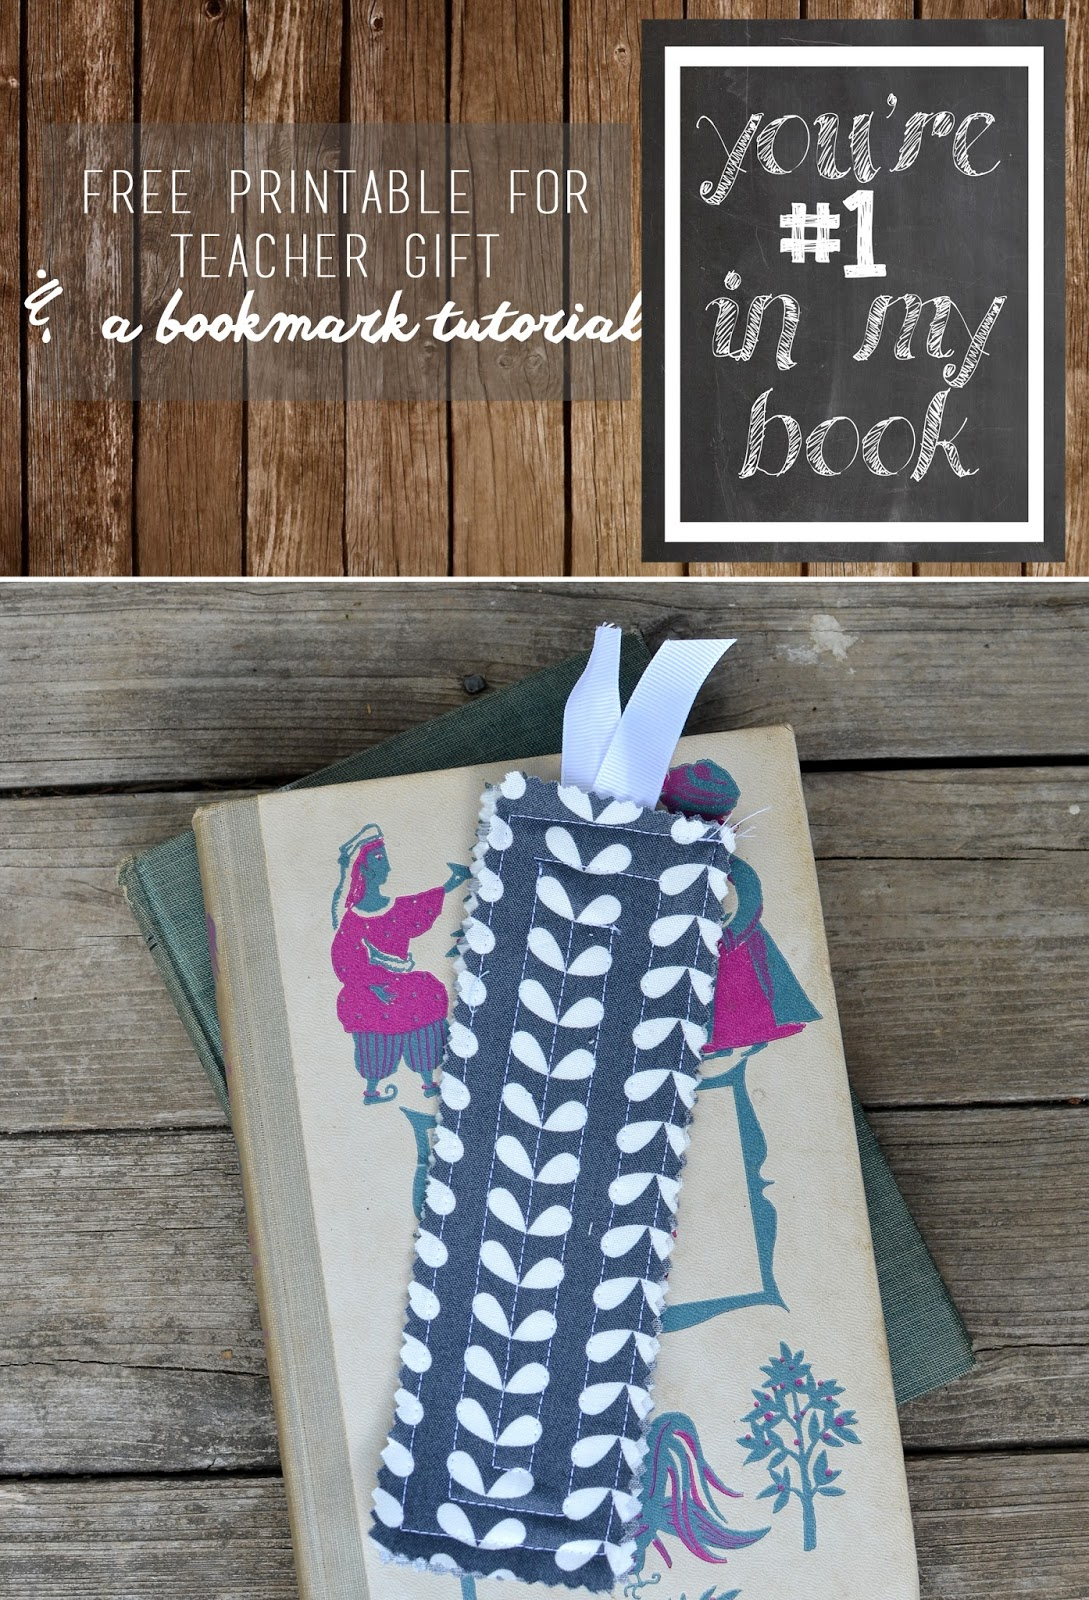 Free printable for teacher gift and bookmark tutorial